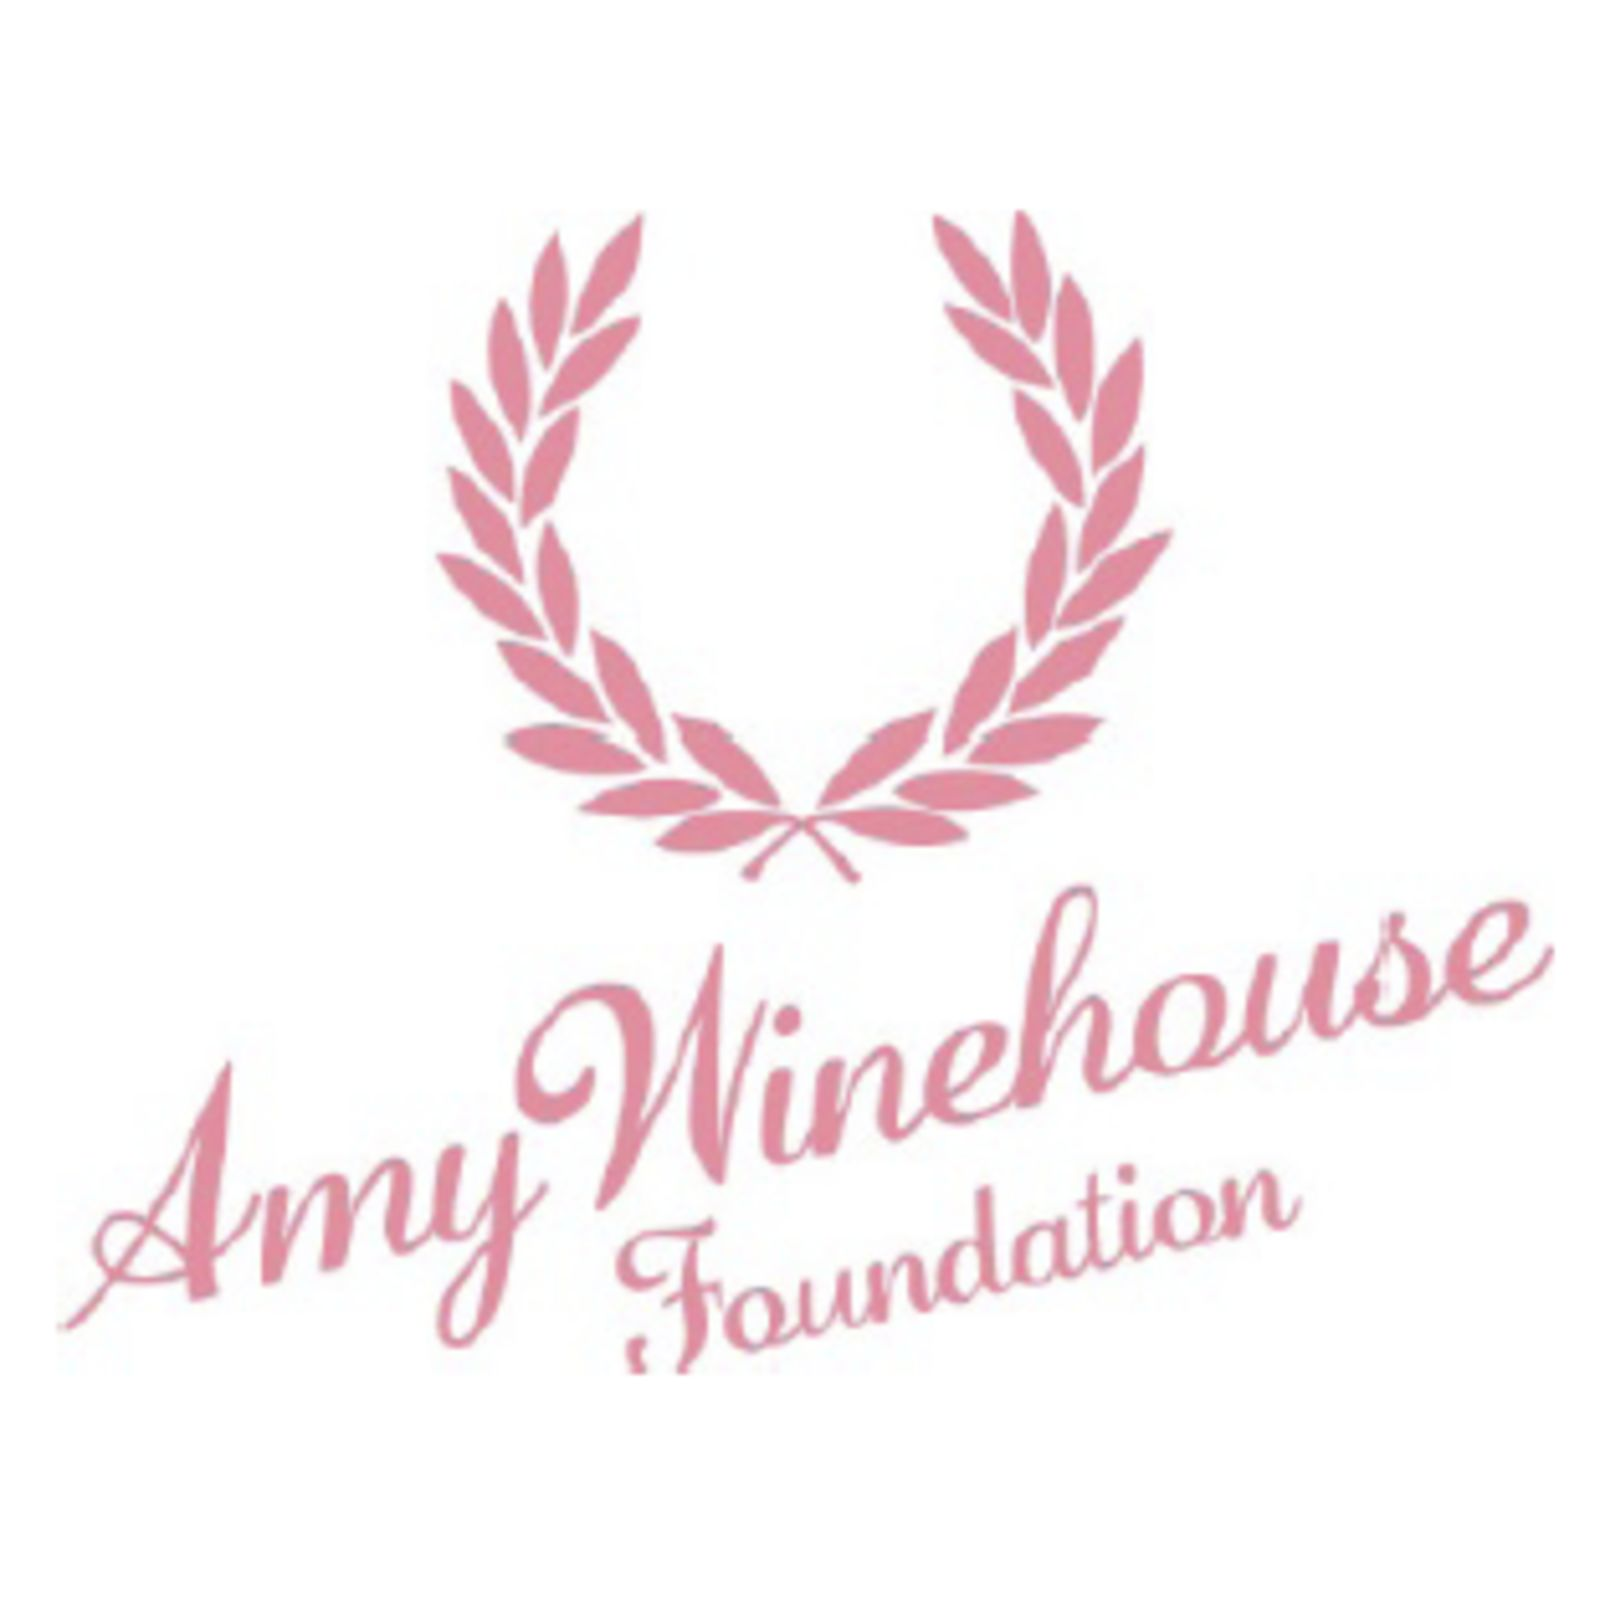 FRED PERRY Authentic | AMY WINEHOUSE Foundation (Image 1)